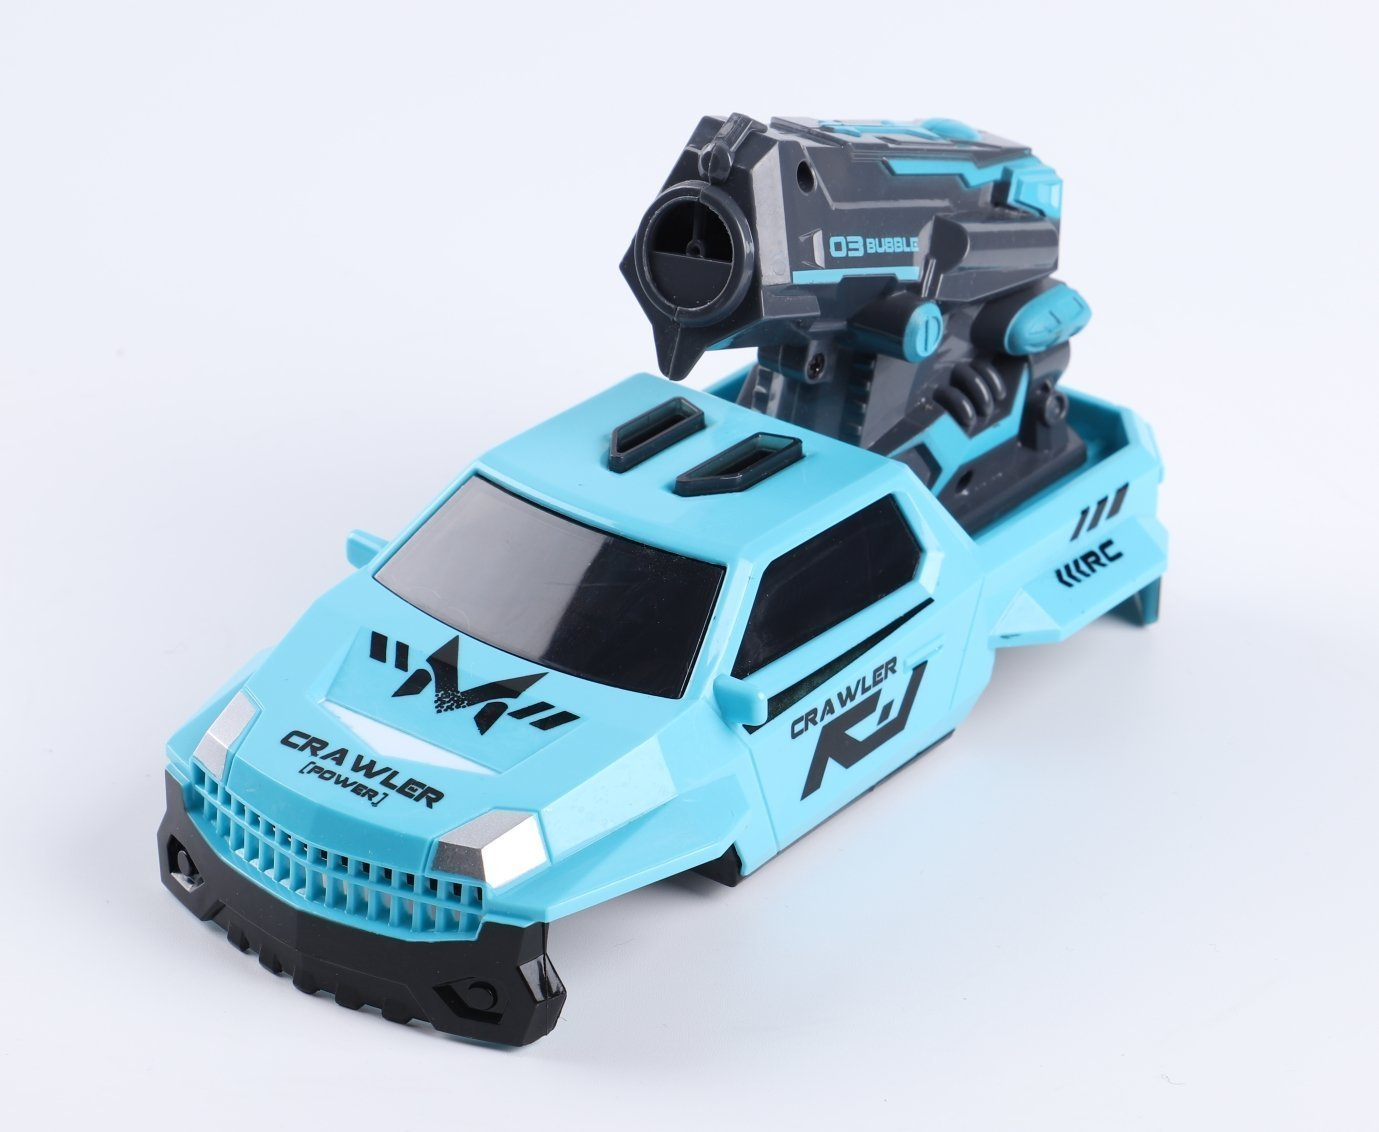 1:10 Competitive racing - 3 weapon style shell options